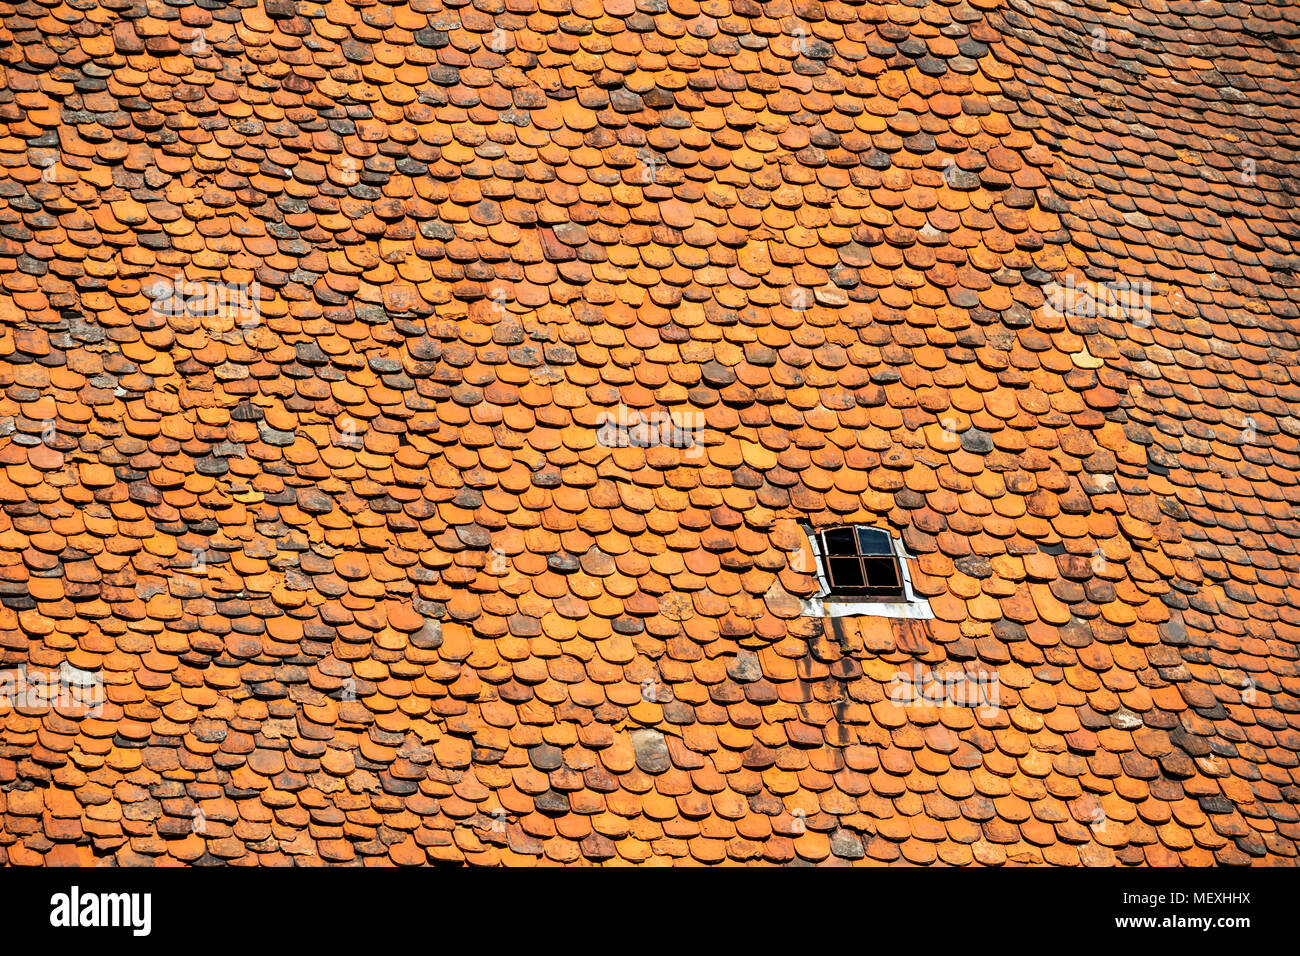 housetop with historic beaver-tail roofing tiles in Büdingen, Hesse, Germany, Europe Stock Photo